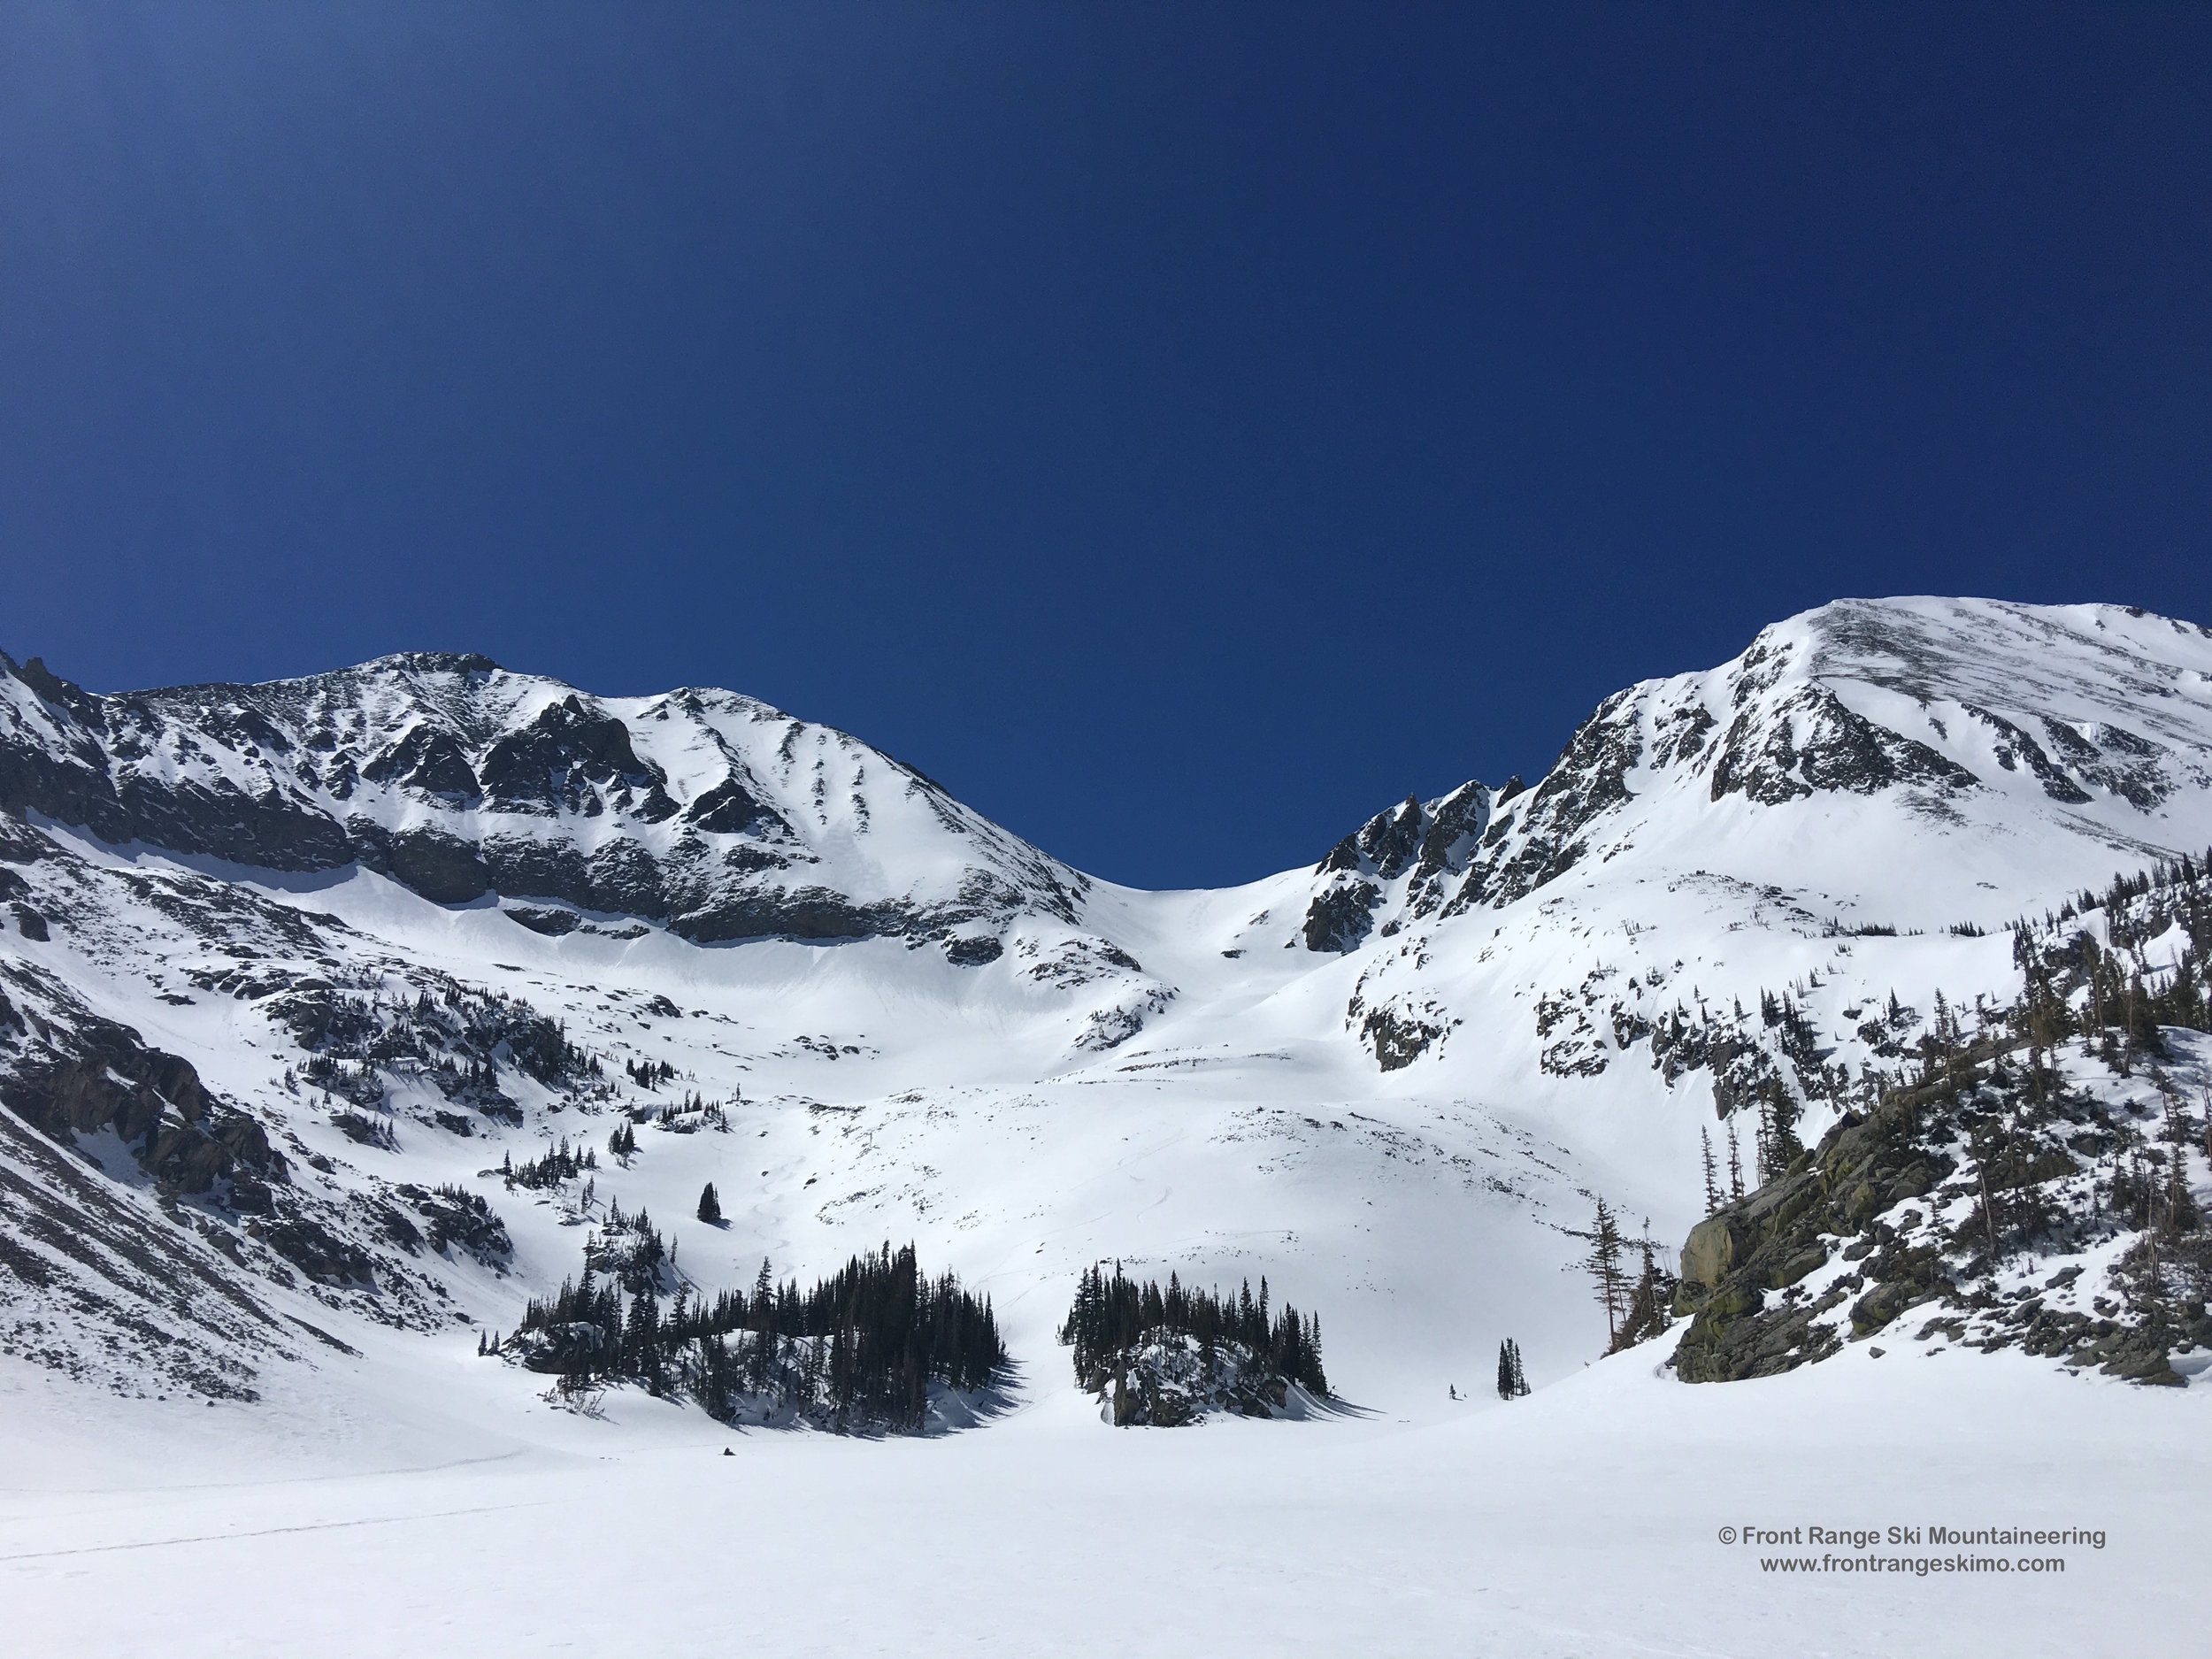 Looking up at Mounts Richthofen and Mahler from Lake Agnes.